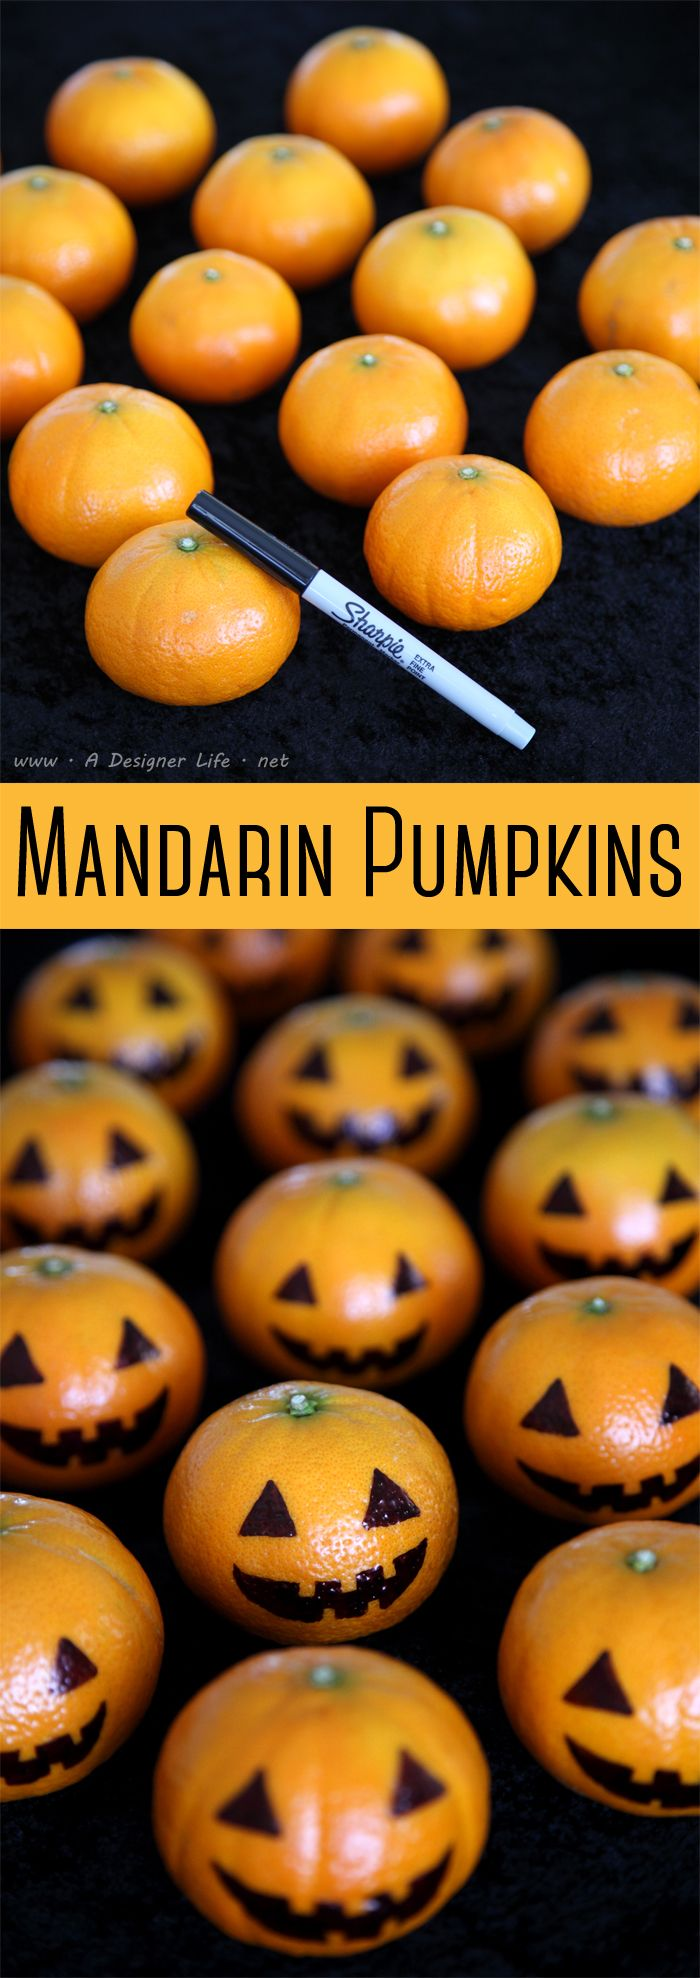 'Like' to vote for @jessdunnthis's Mandarin Pumpkins! #HSPinParty